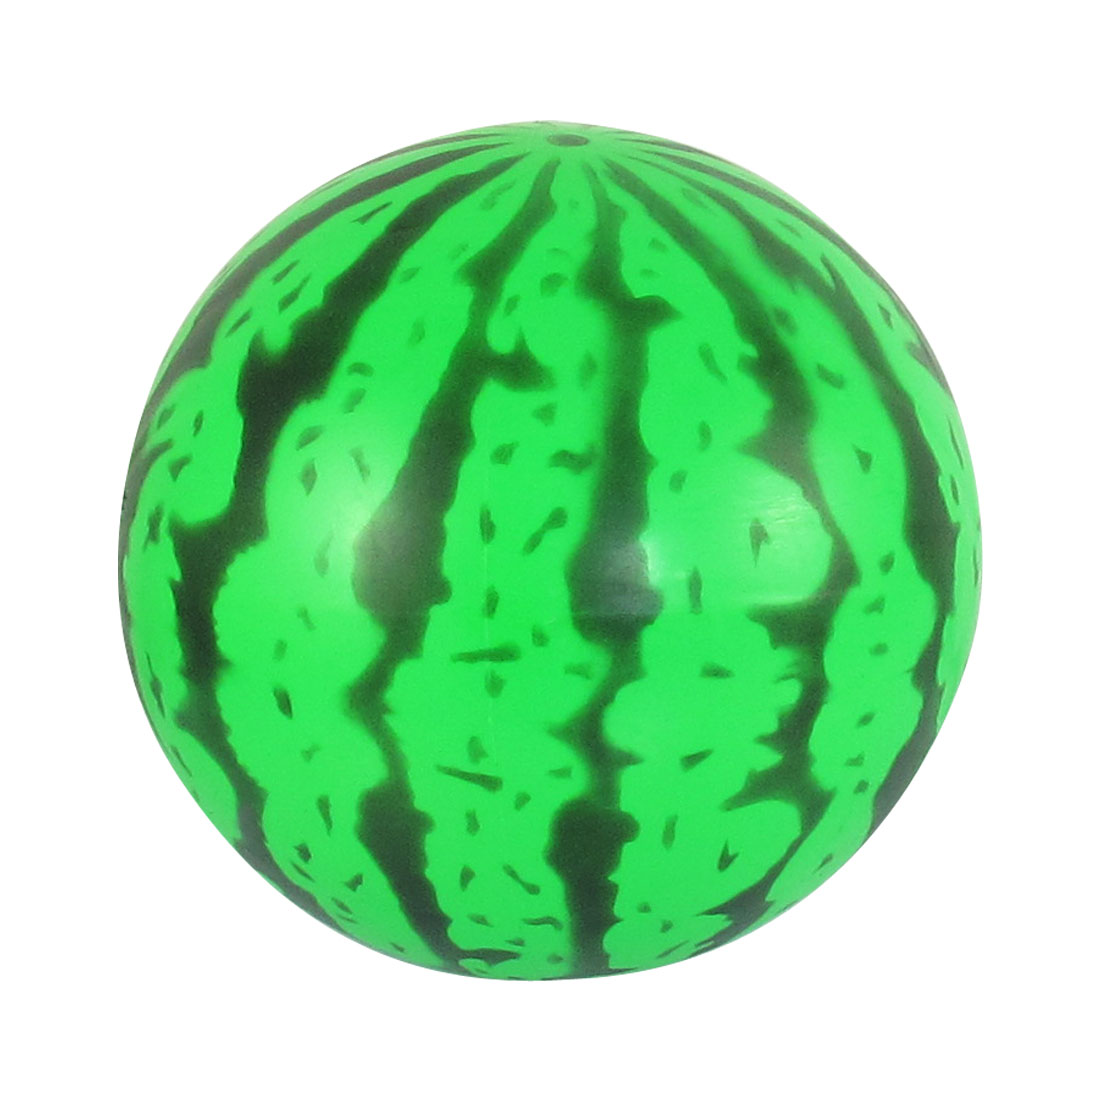 "Children Kid Gift PVC Watermelon Pattern Ball Toy 4.5"" Dia Green Black"